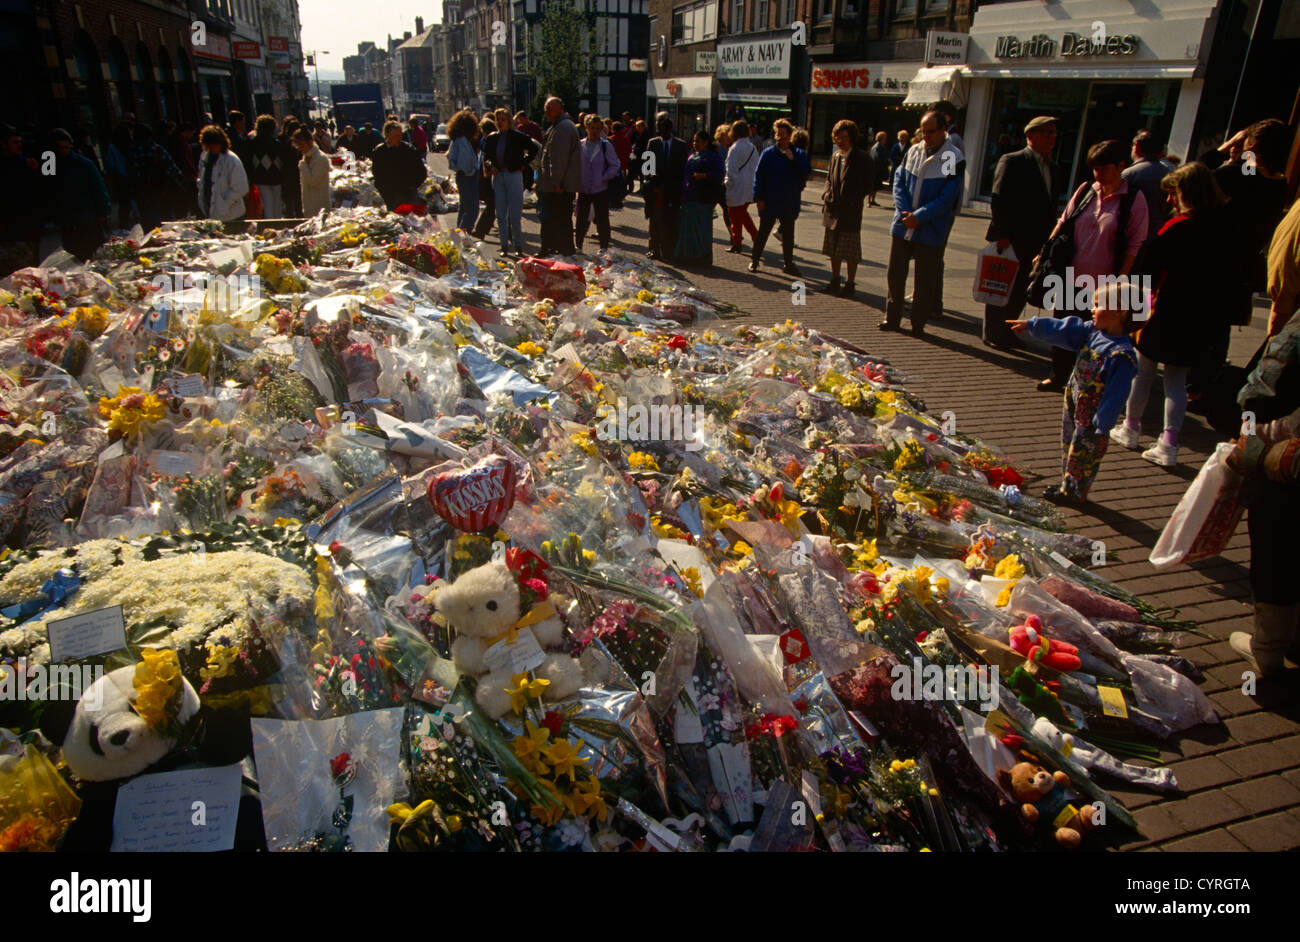 Locals pay respects to a growing mound of a floral memorial in memory of two people killed by an IRA bomb in Warrington - Stock Image